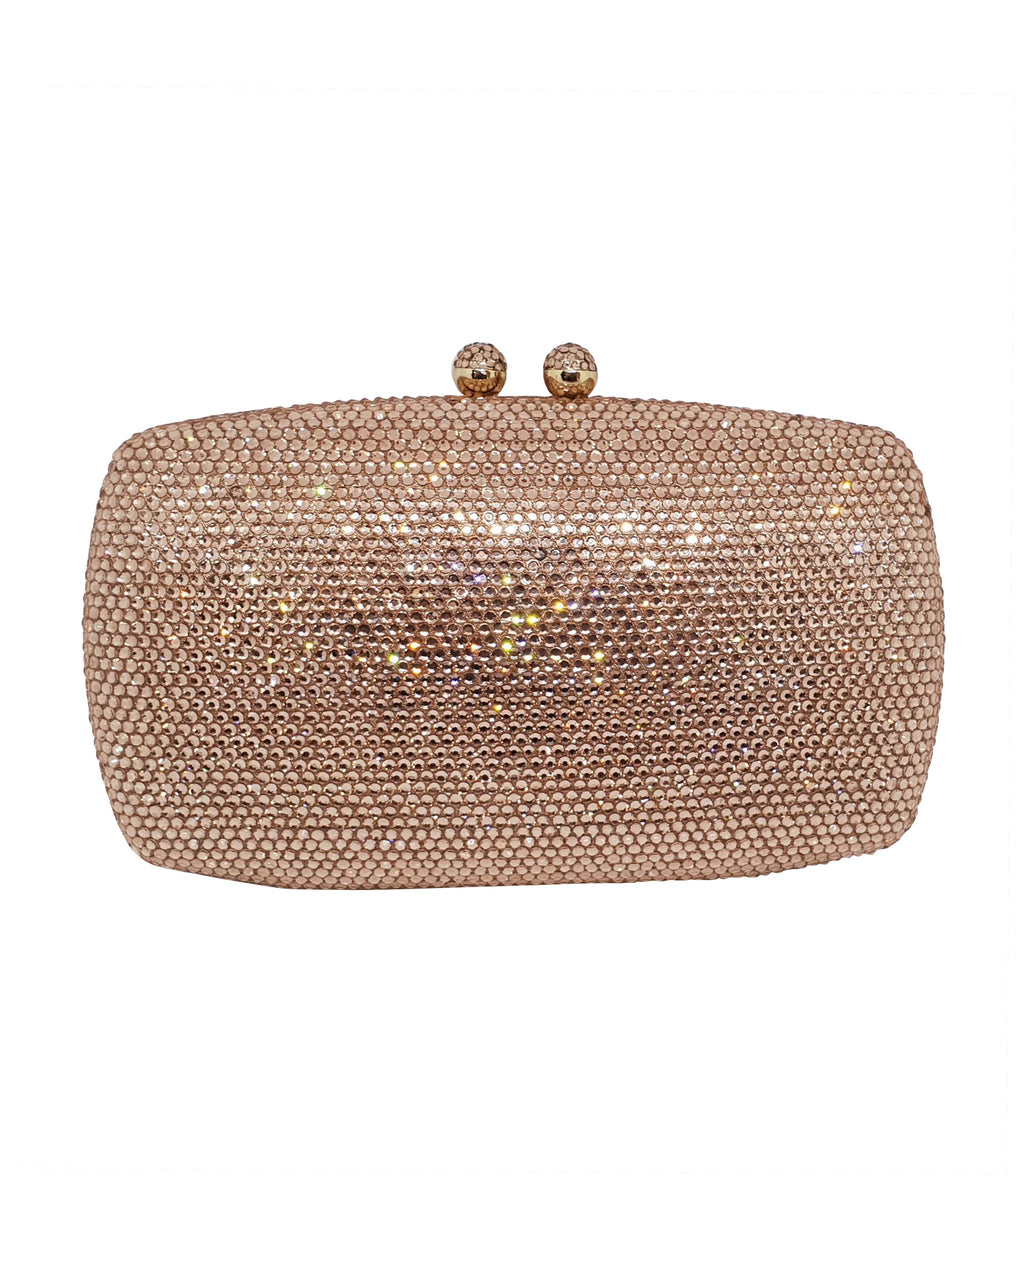 Rose Gold Stone Clutch